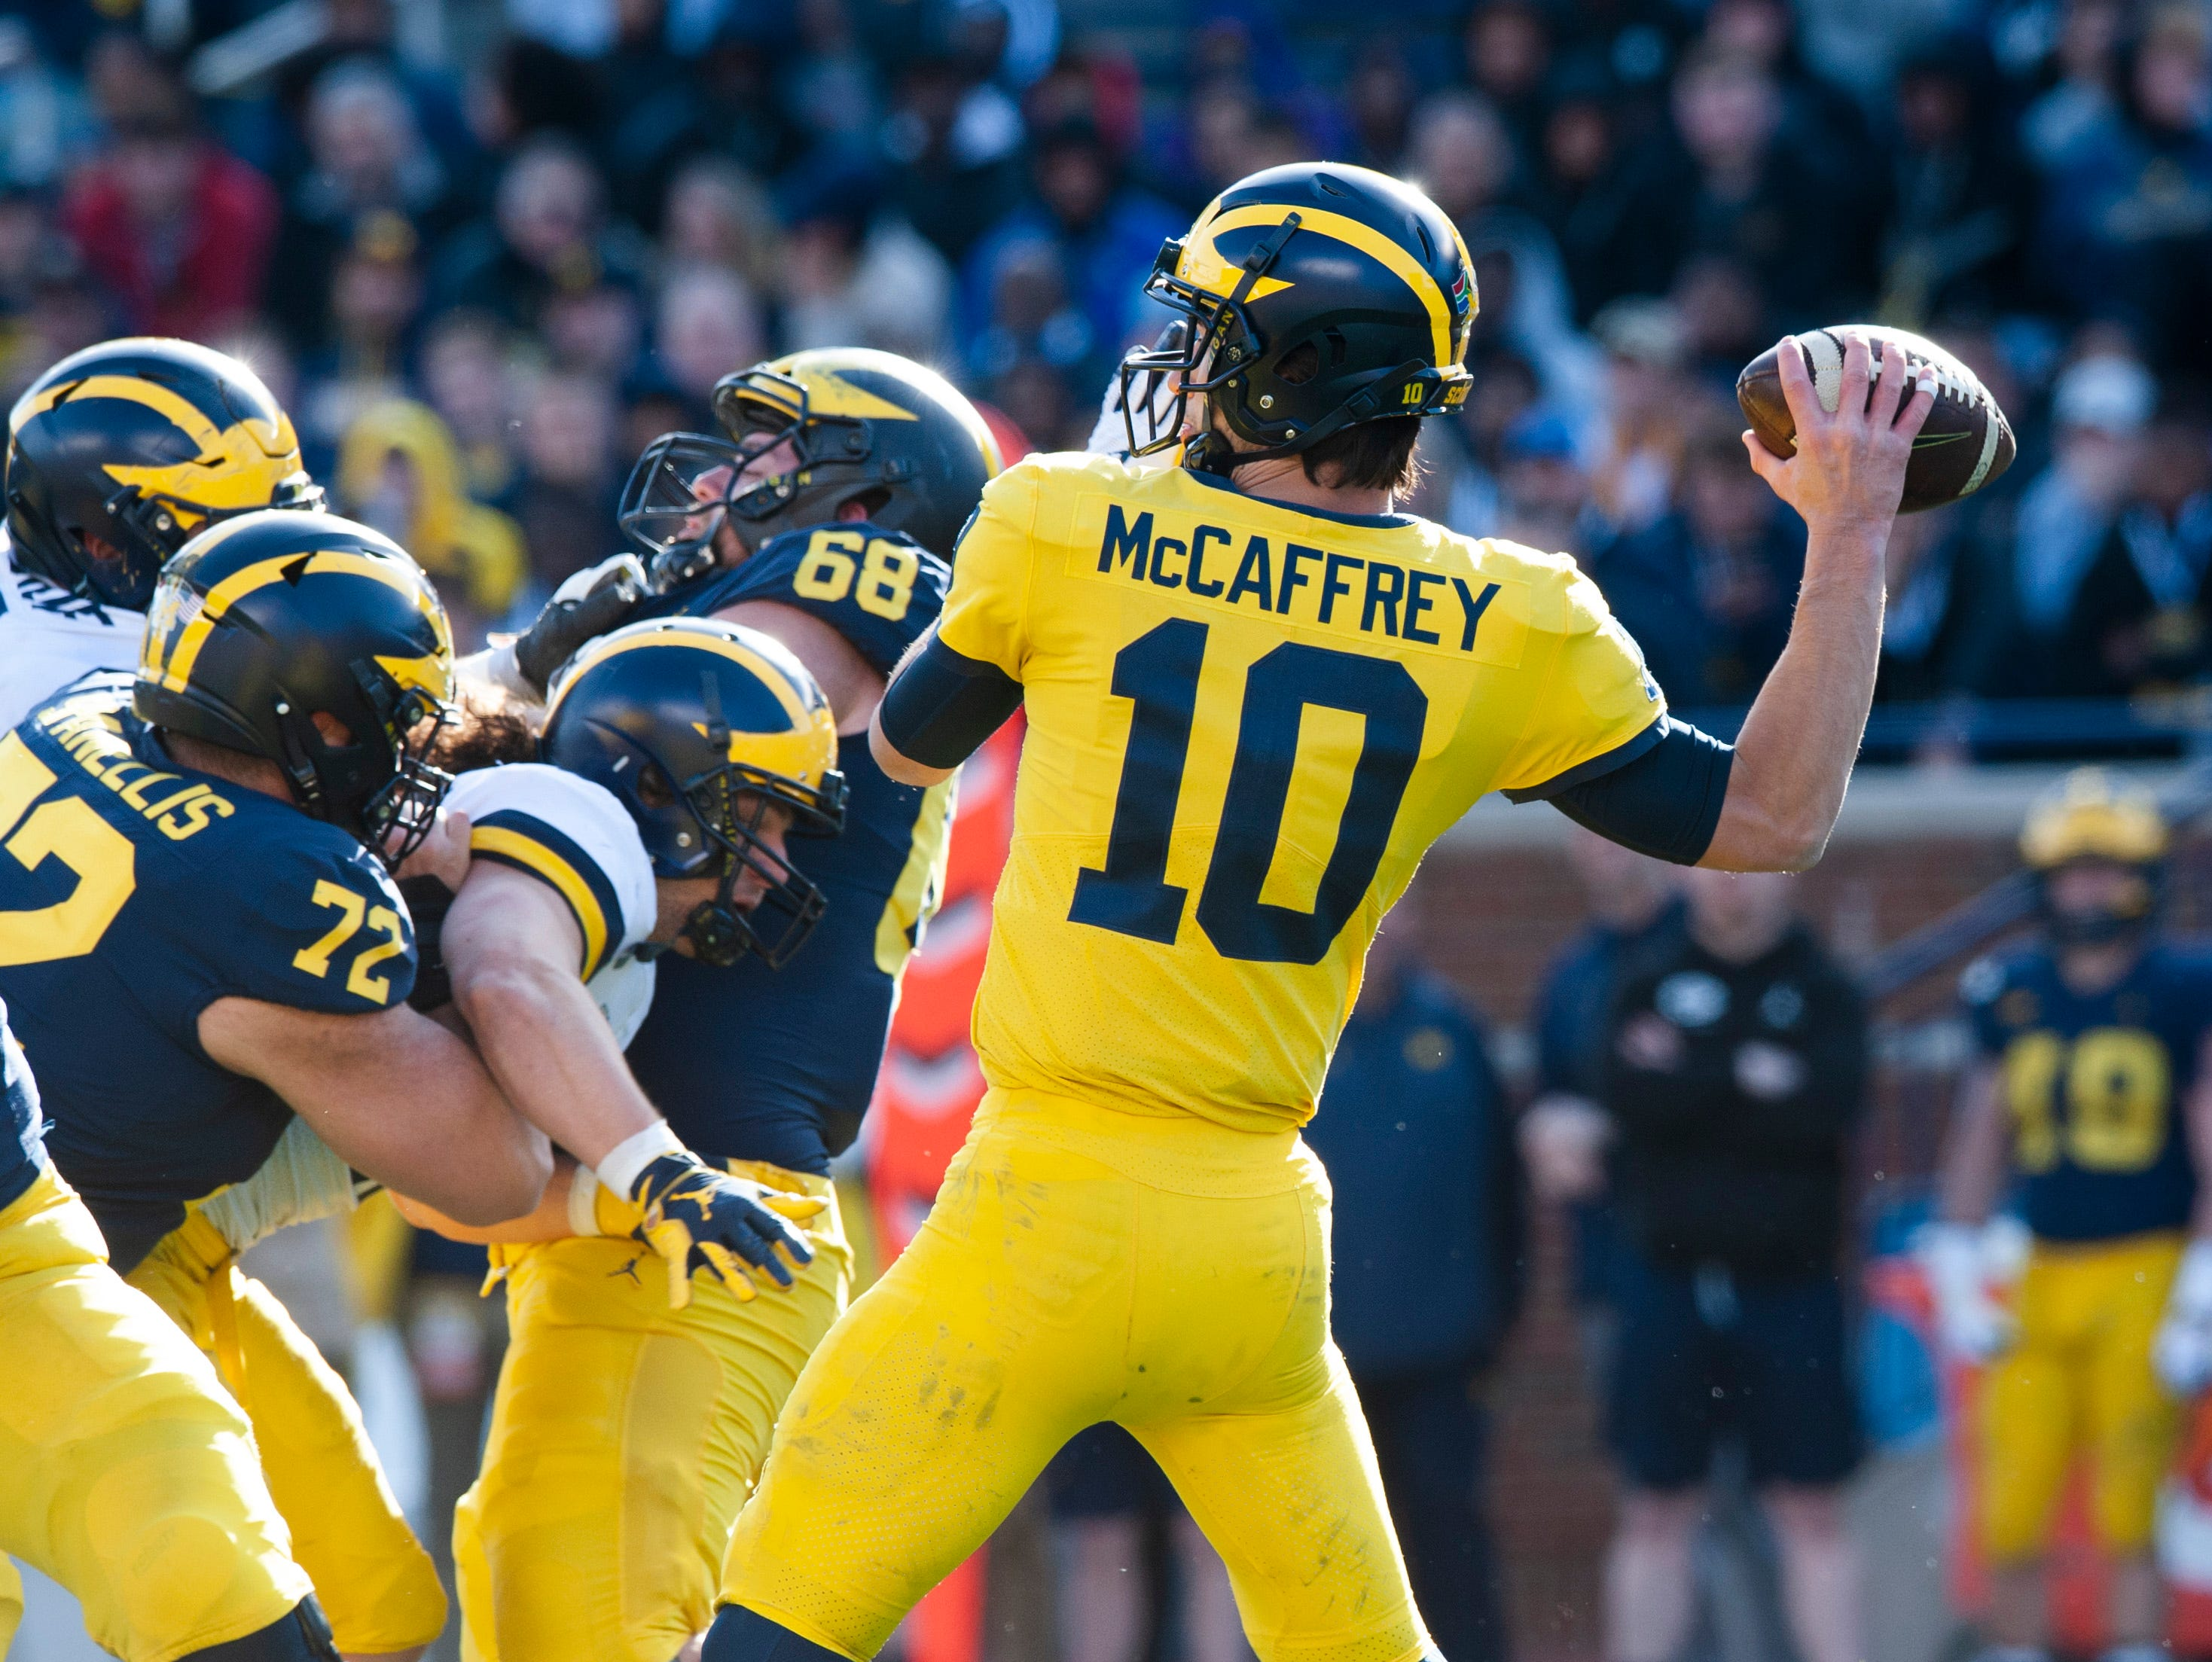 Michigan quarterback Dylan McCaffrey cocks his arm to throw a pass during the 2019 Spring Game at the Big House.